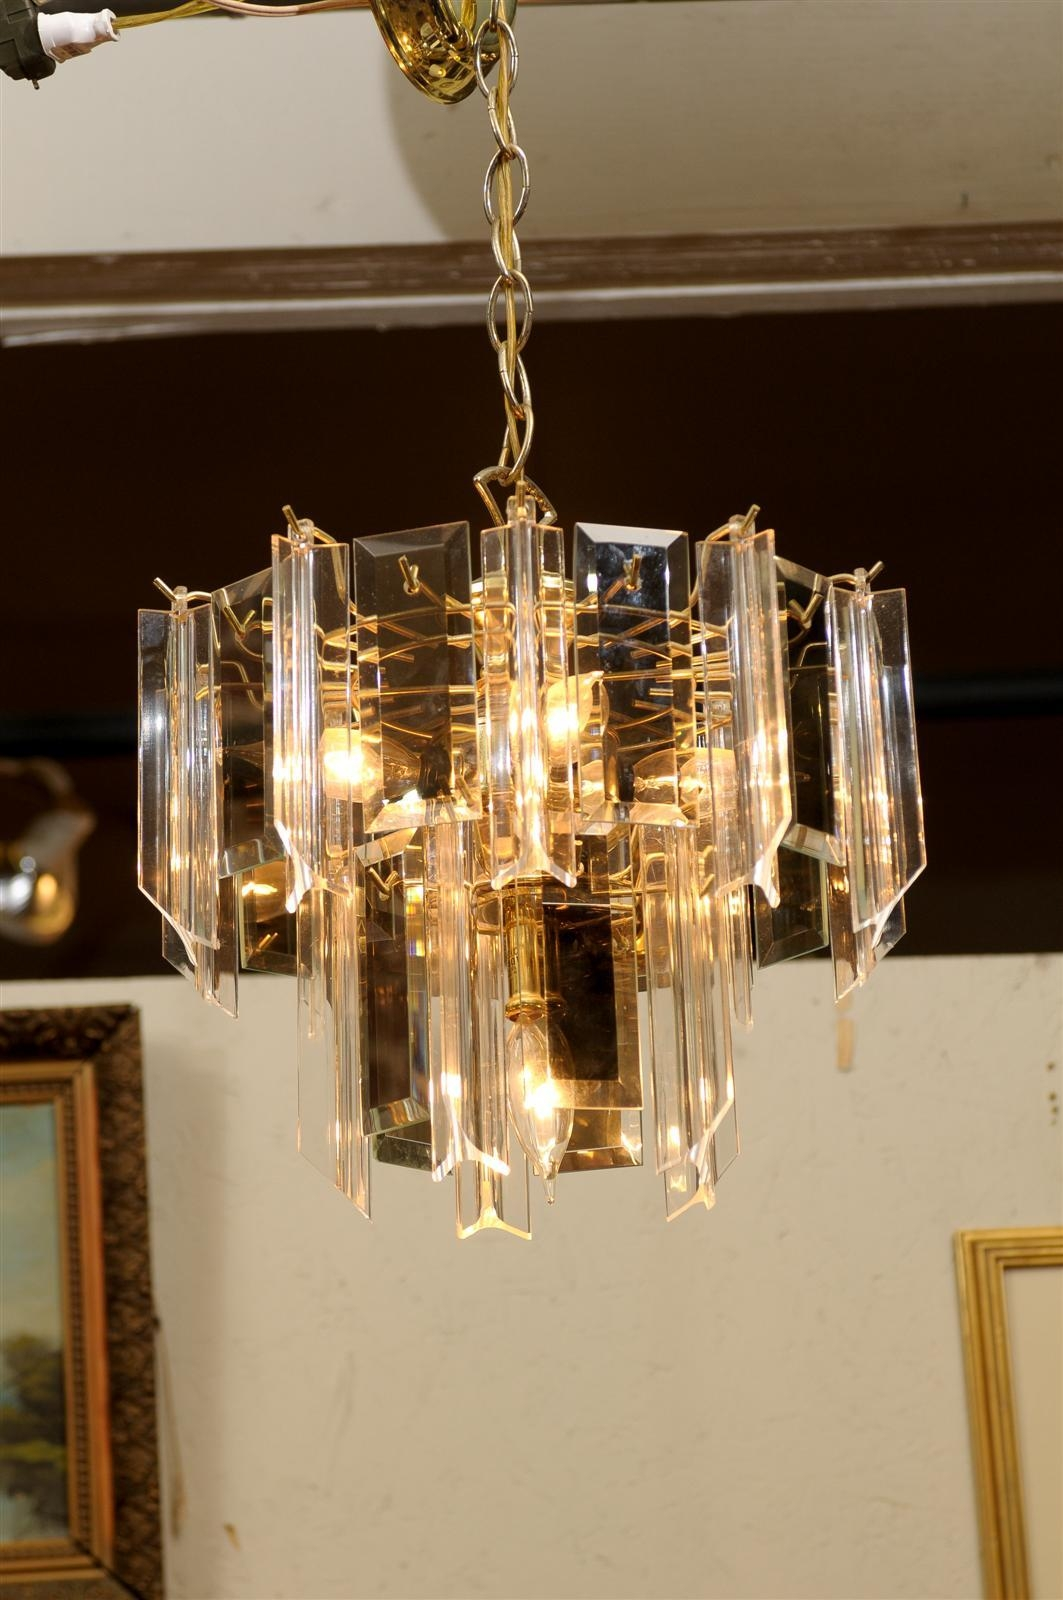 Vintage Waterfall Chandelier Of Brass Smoked Glass And Lucite At With Regard To Brass And Glass Chandelier (#11 of 12)